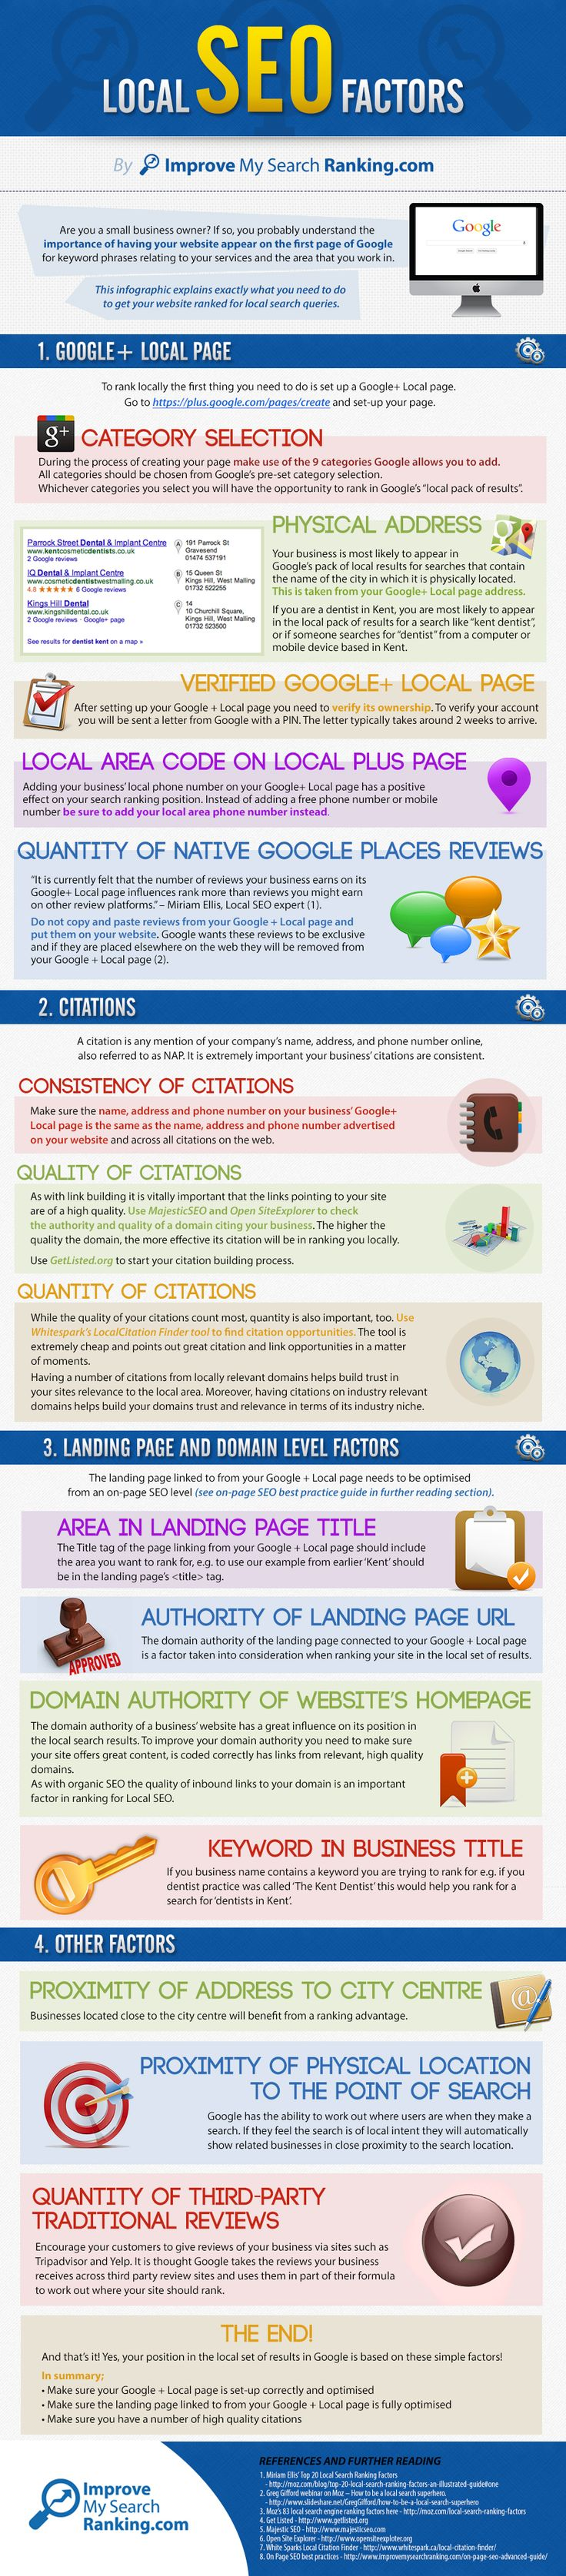 Local SEO Guide: This infographic explains exactly what you need to do to get your website ranked for local search results.